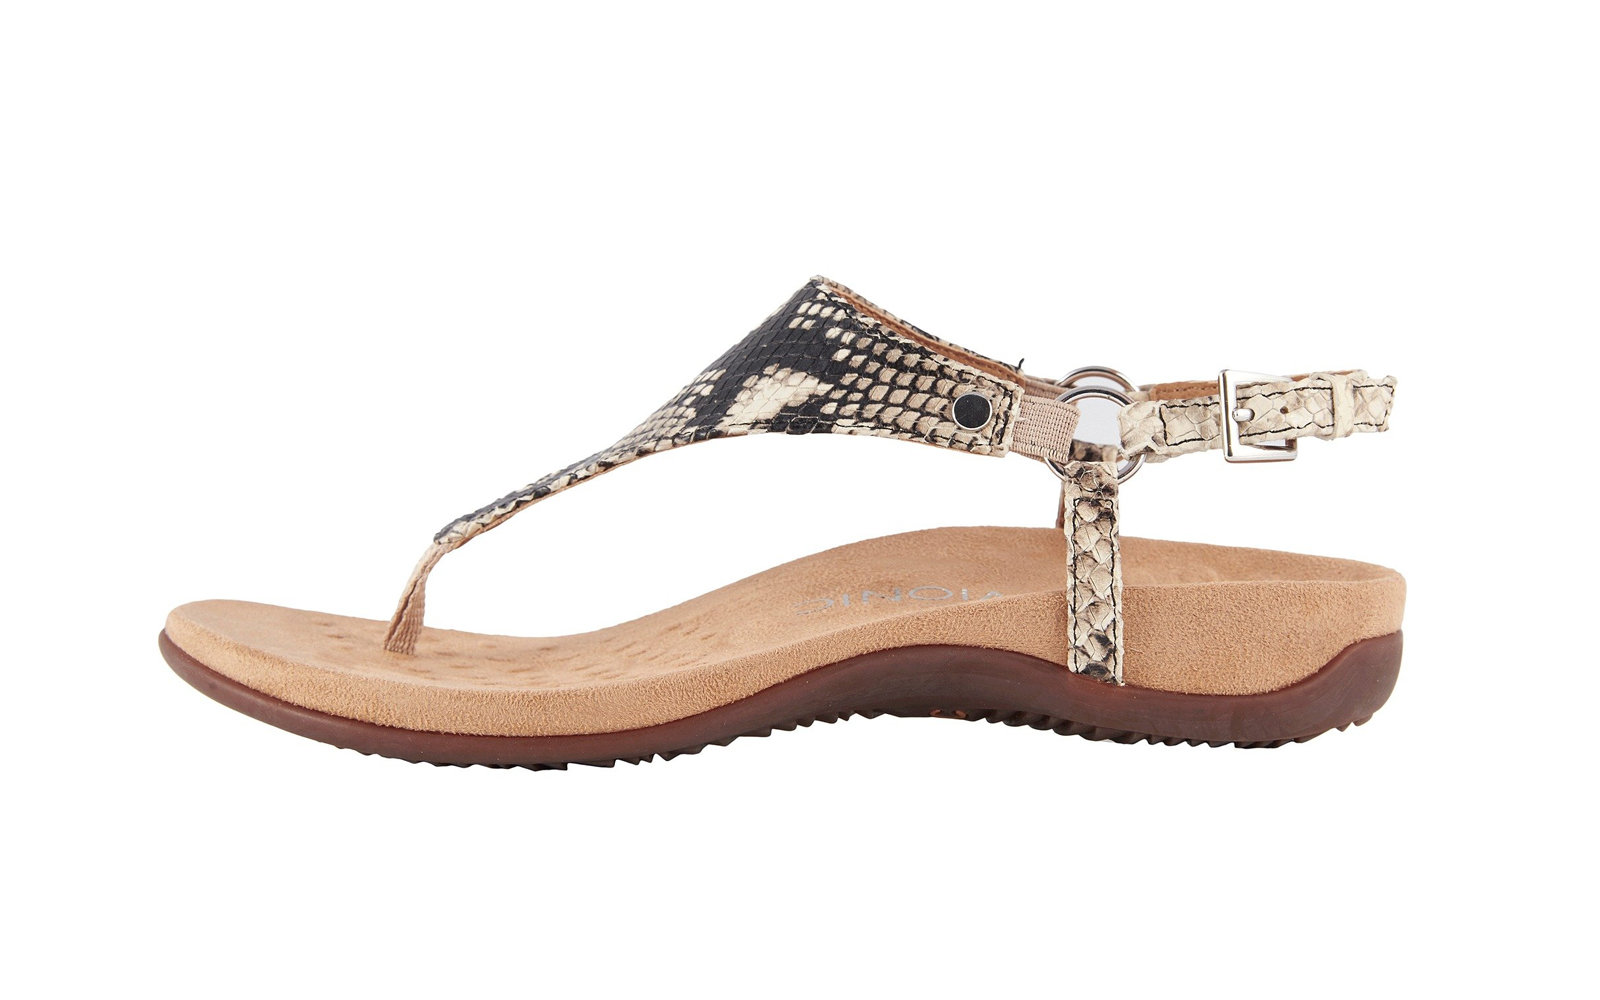 The Best Sandals for Your Feet, According to Podiatrist